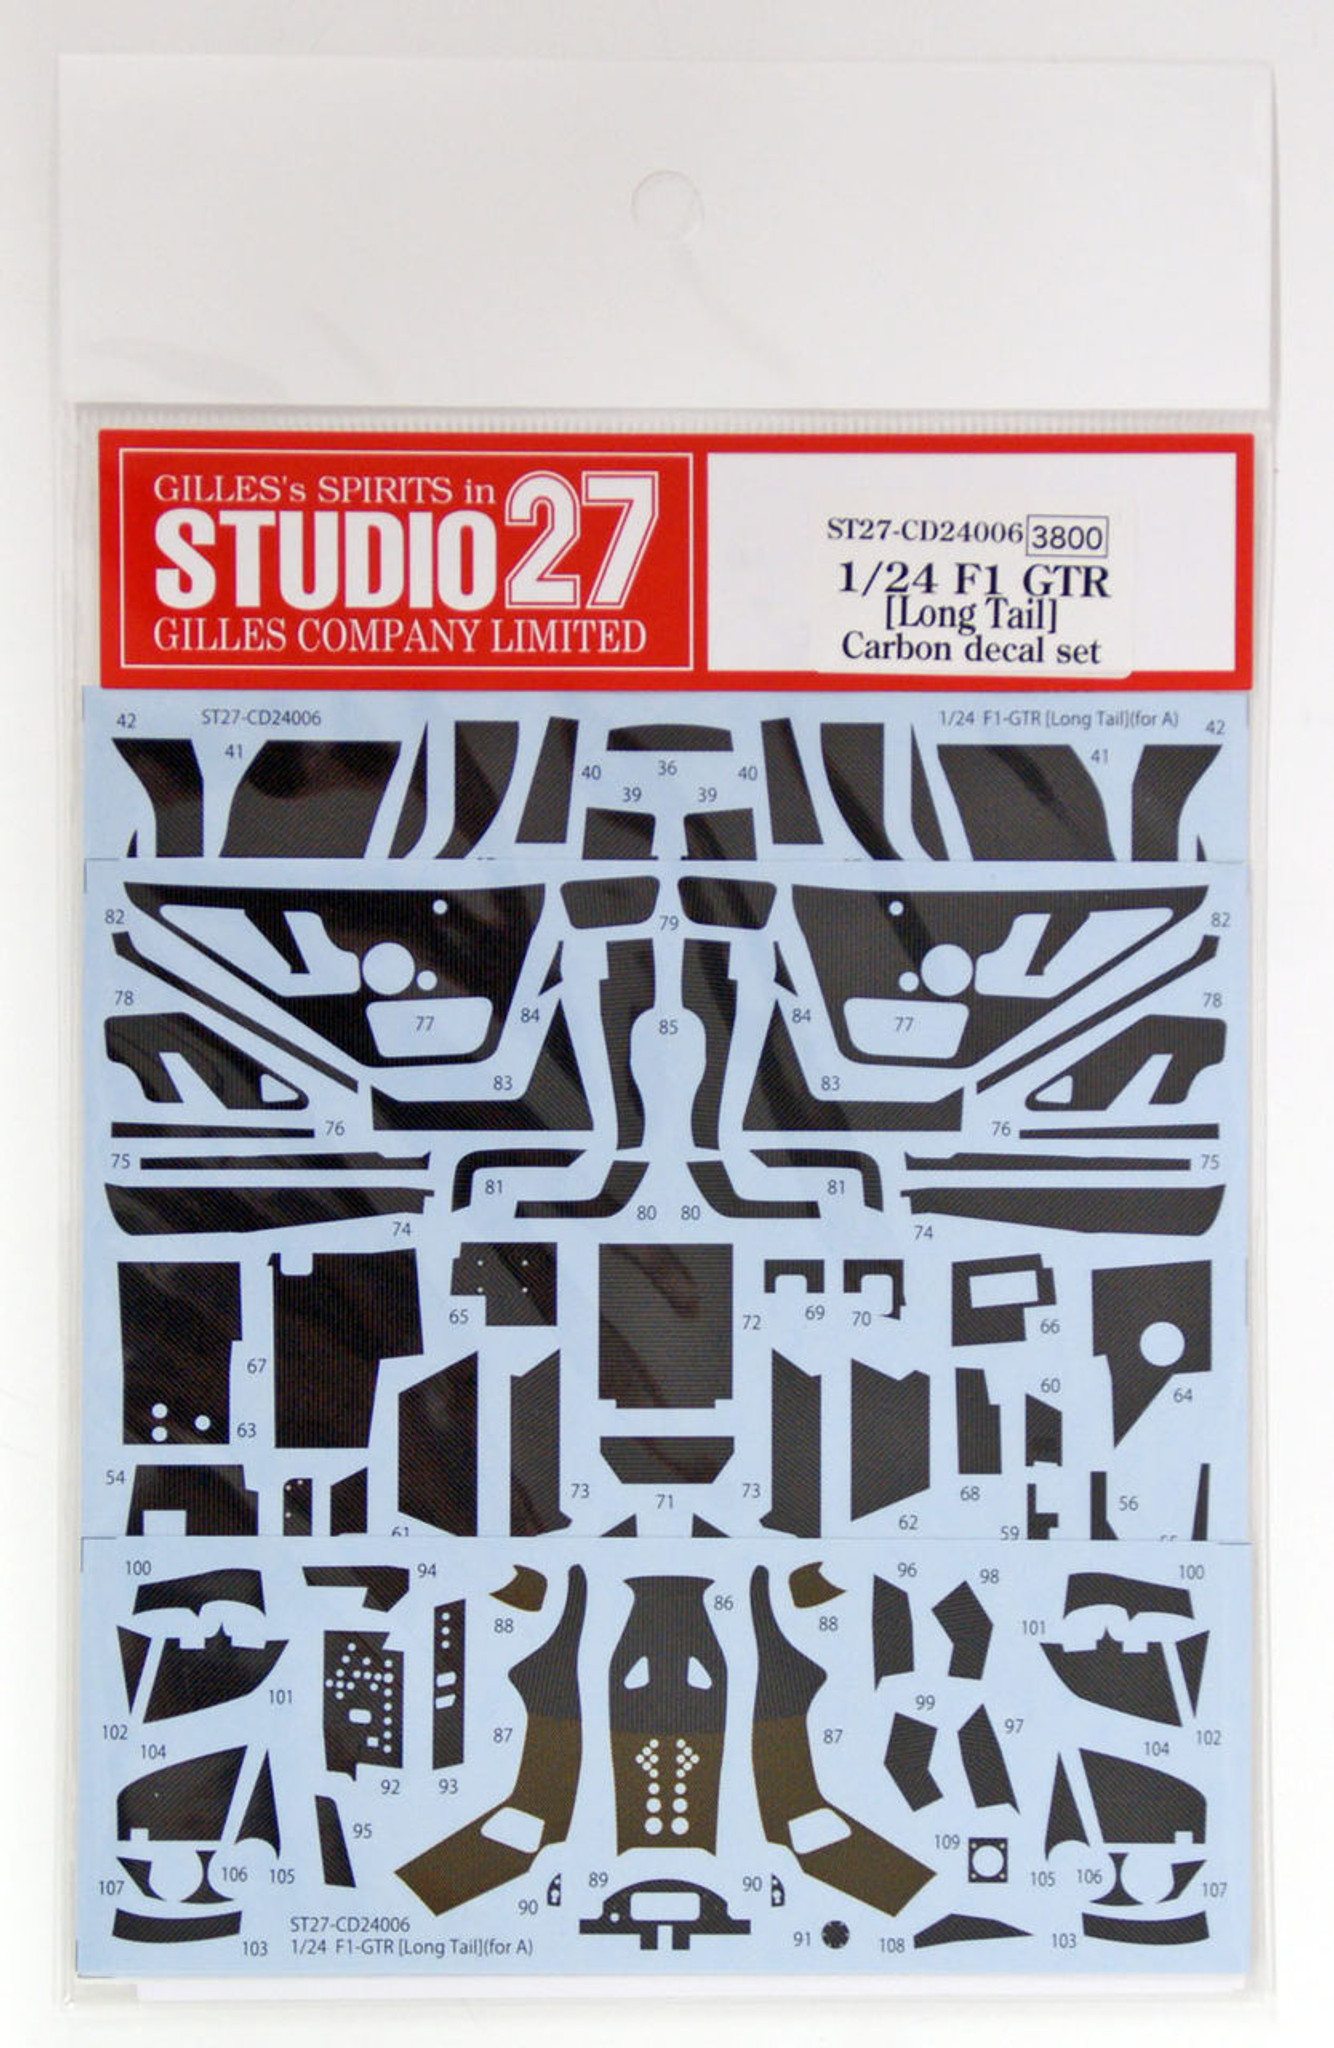 Studio27 ST27-CD24006 McLaren F1 GTR Carbon Decal Set for Aoshima 1/24